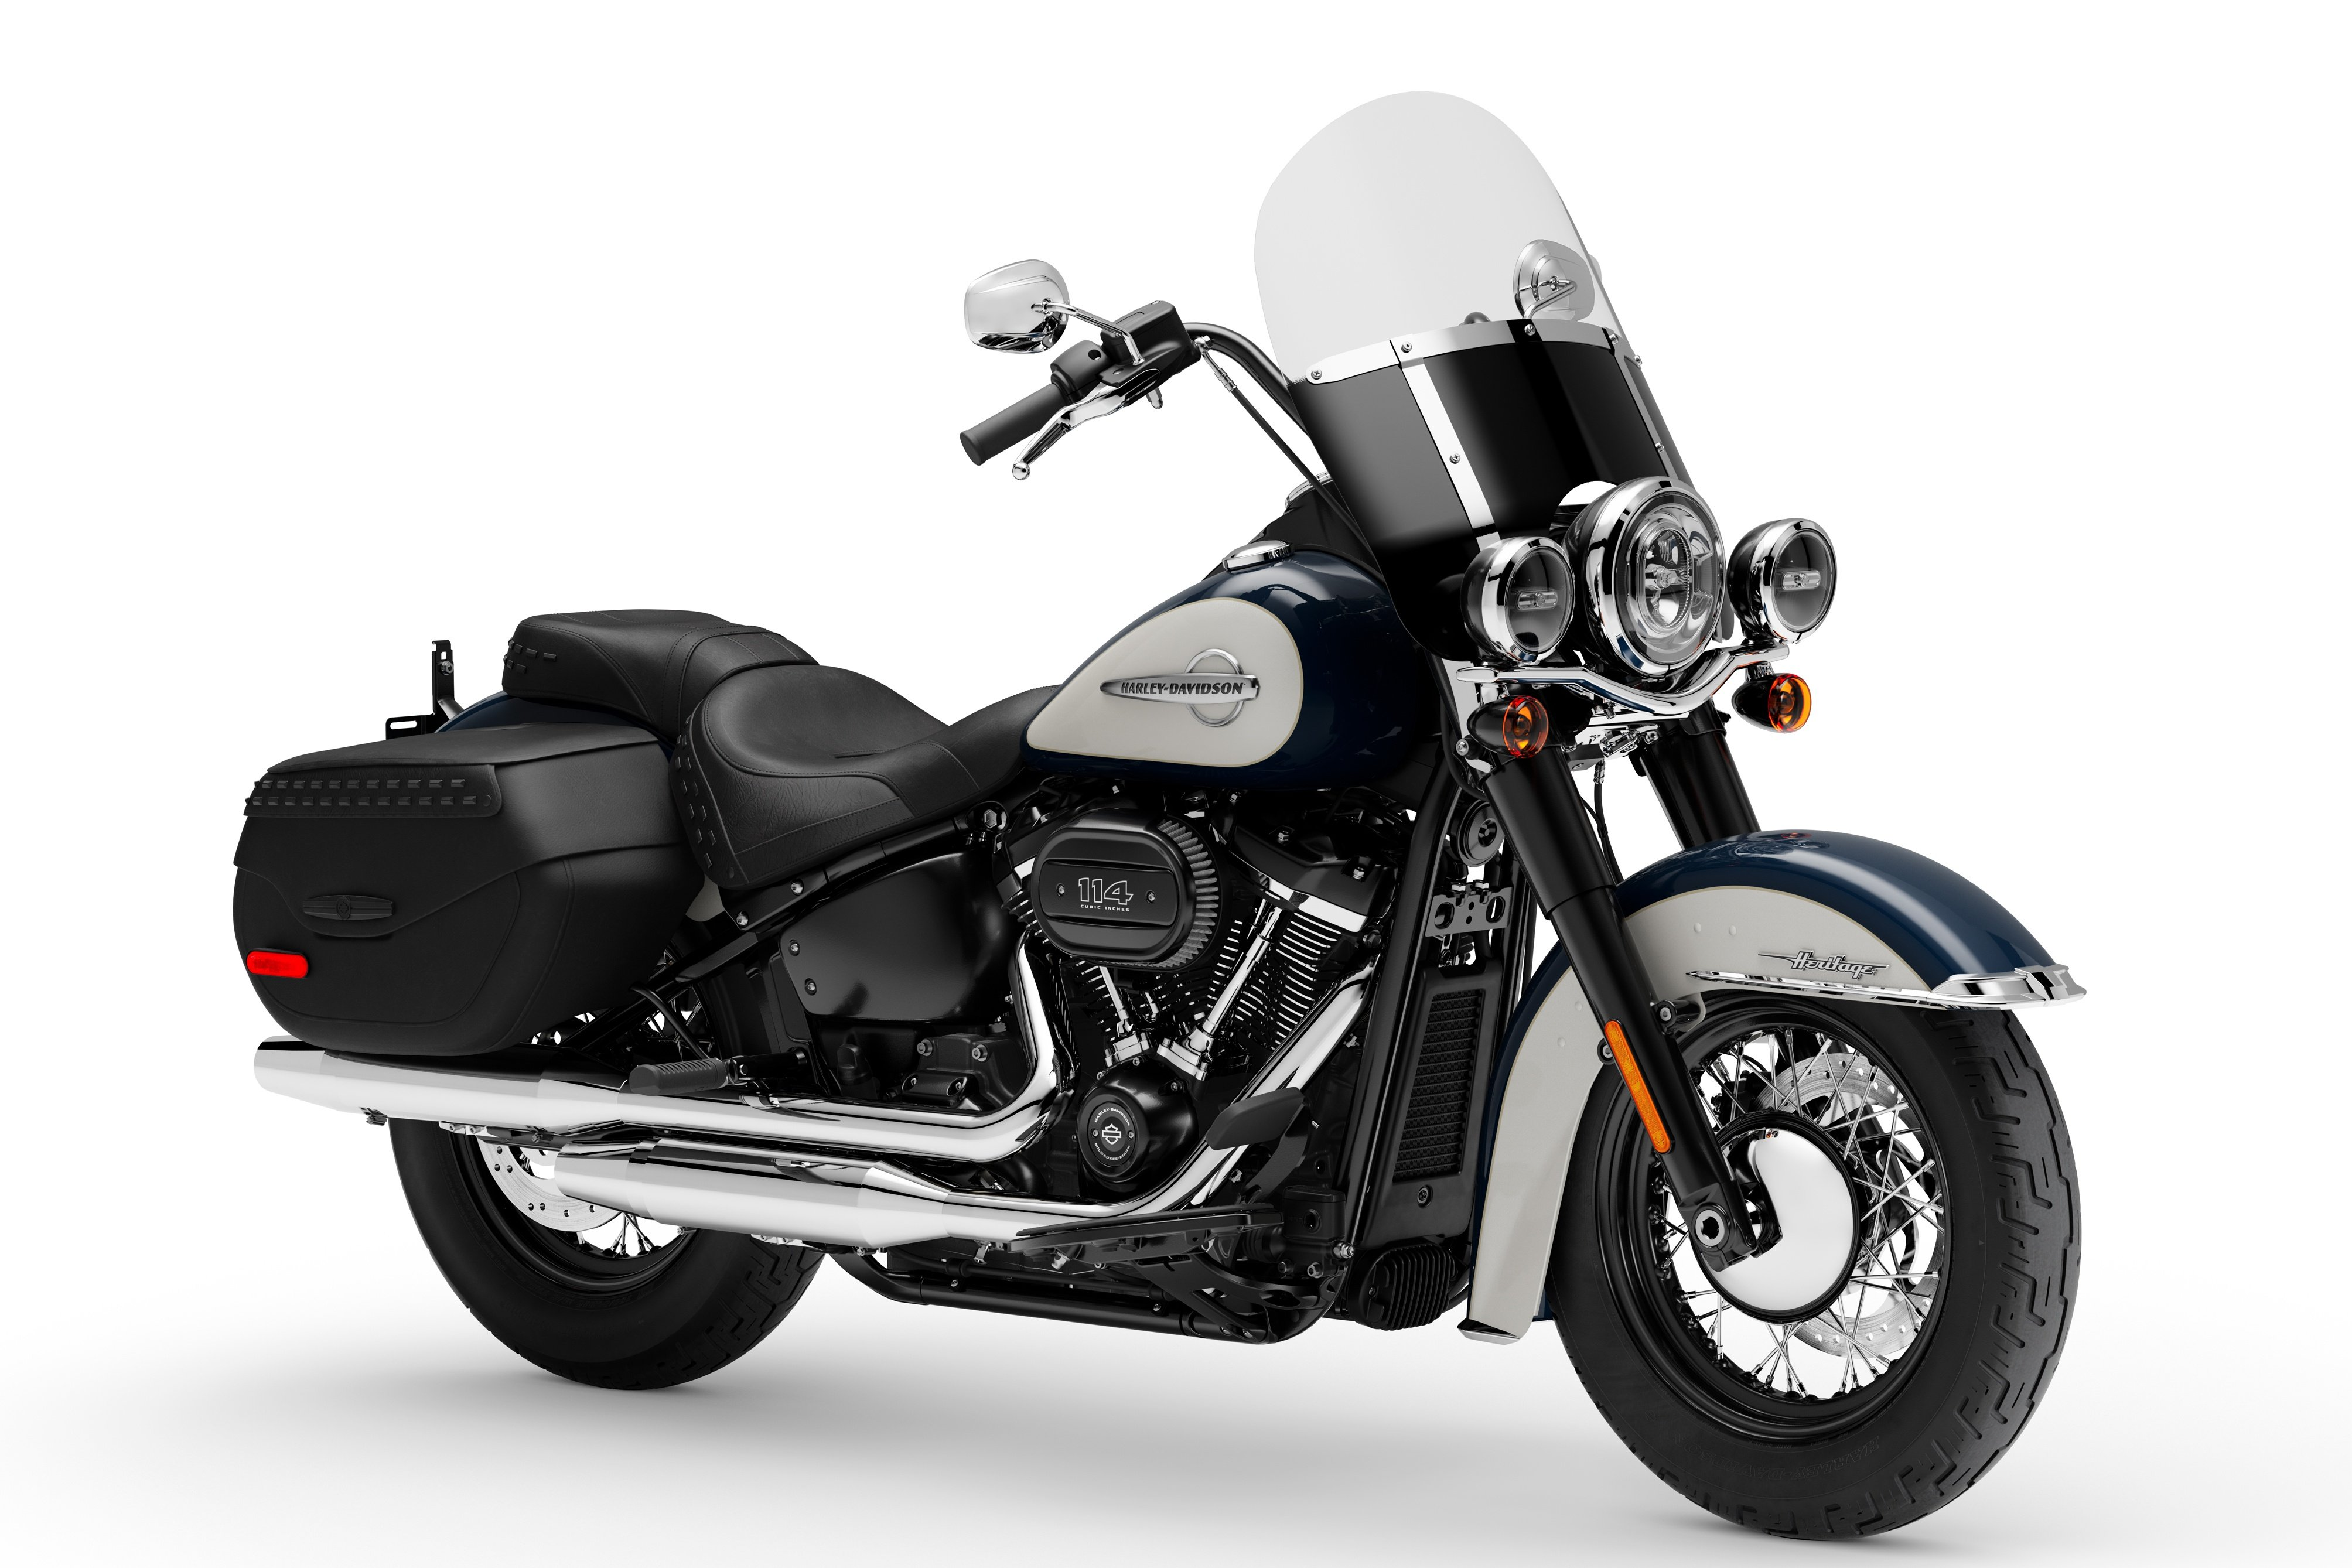 2020 Harley-Davidson Models Announced - Motorcycle.com